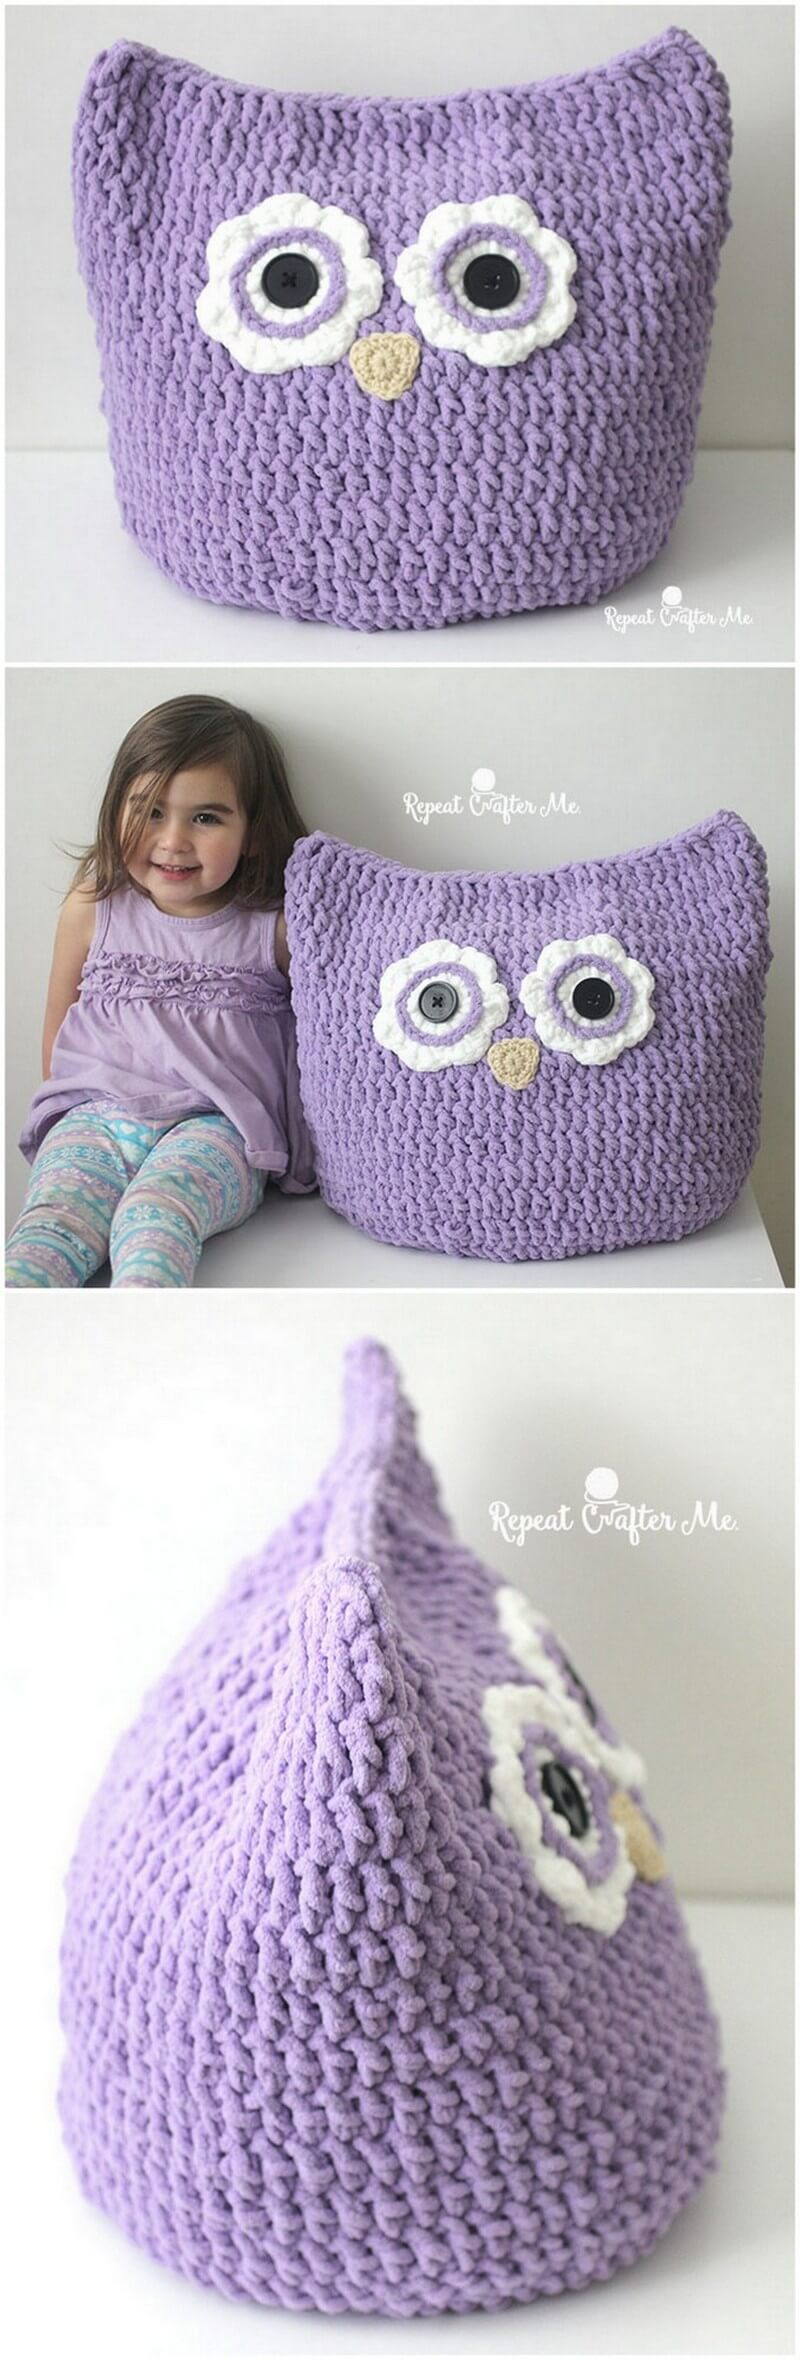 Crochet Pillow Pattern (46)